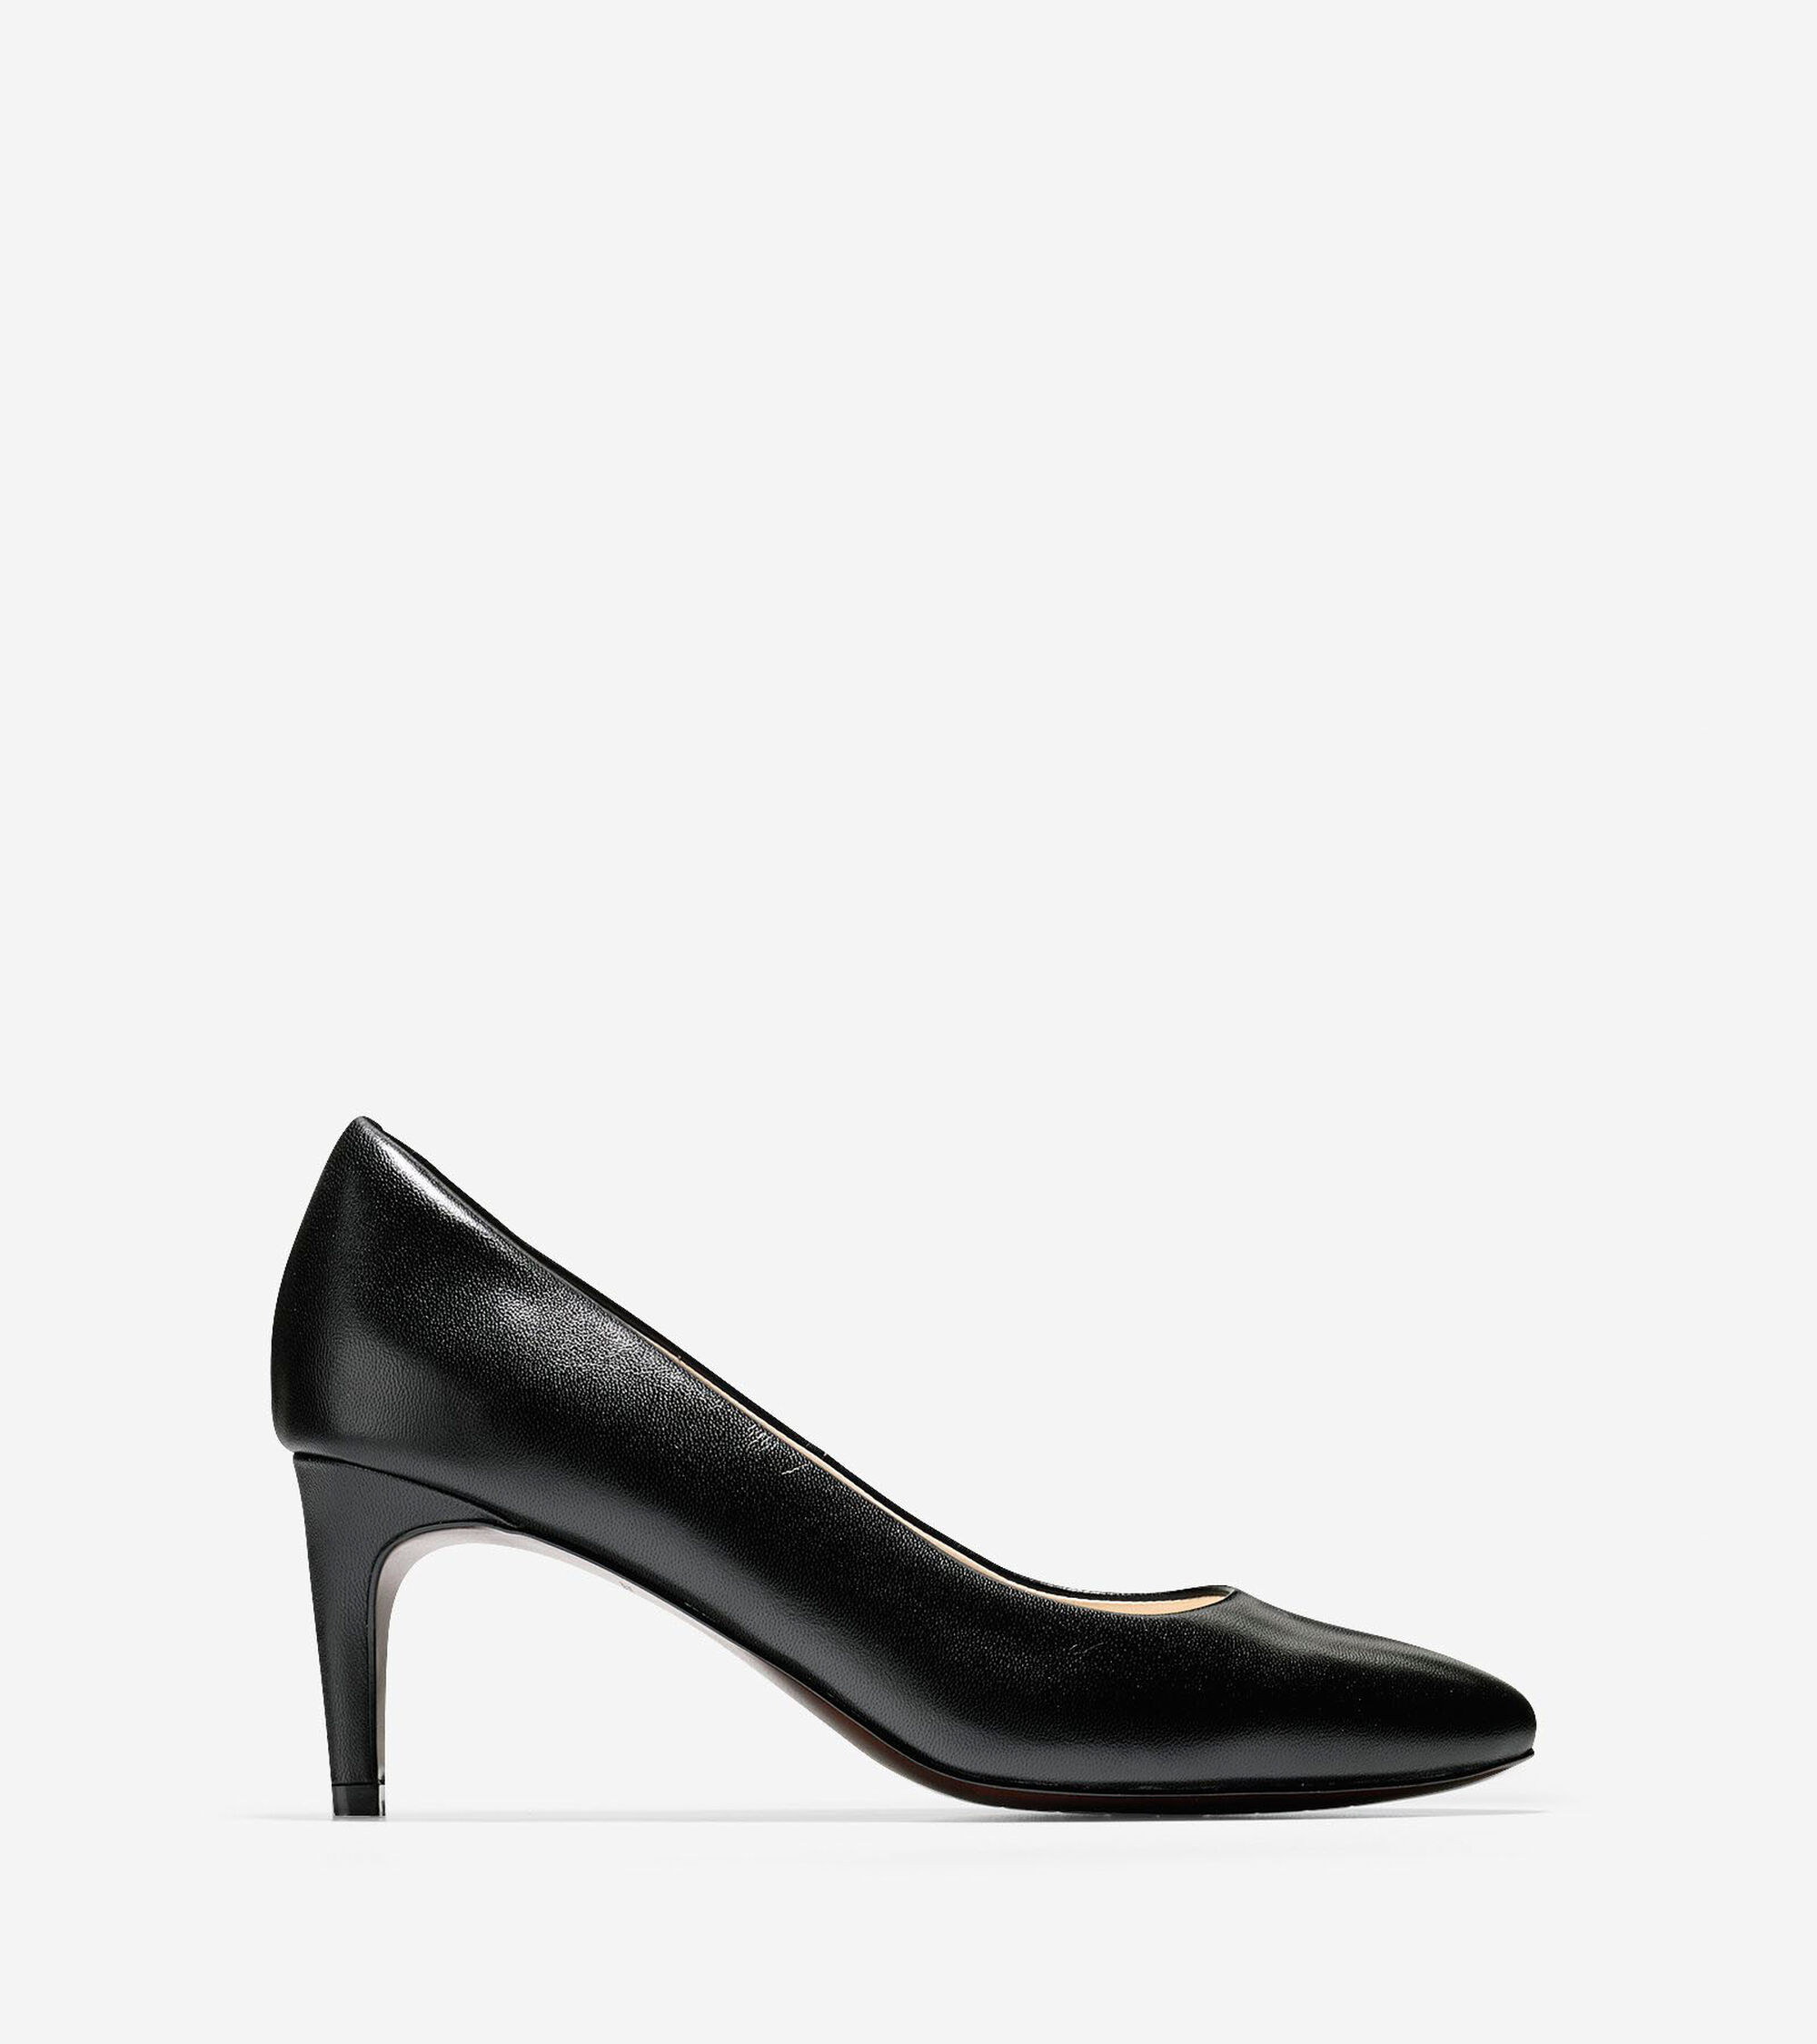 b596fbf1a1b8 Women s Helen Grand Pumps 65mm in Black   Sale